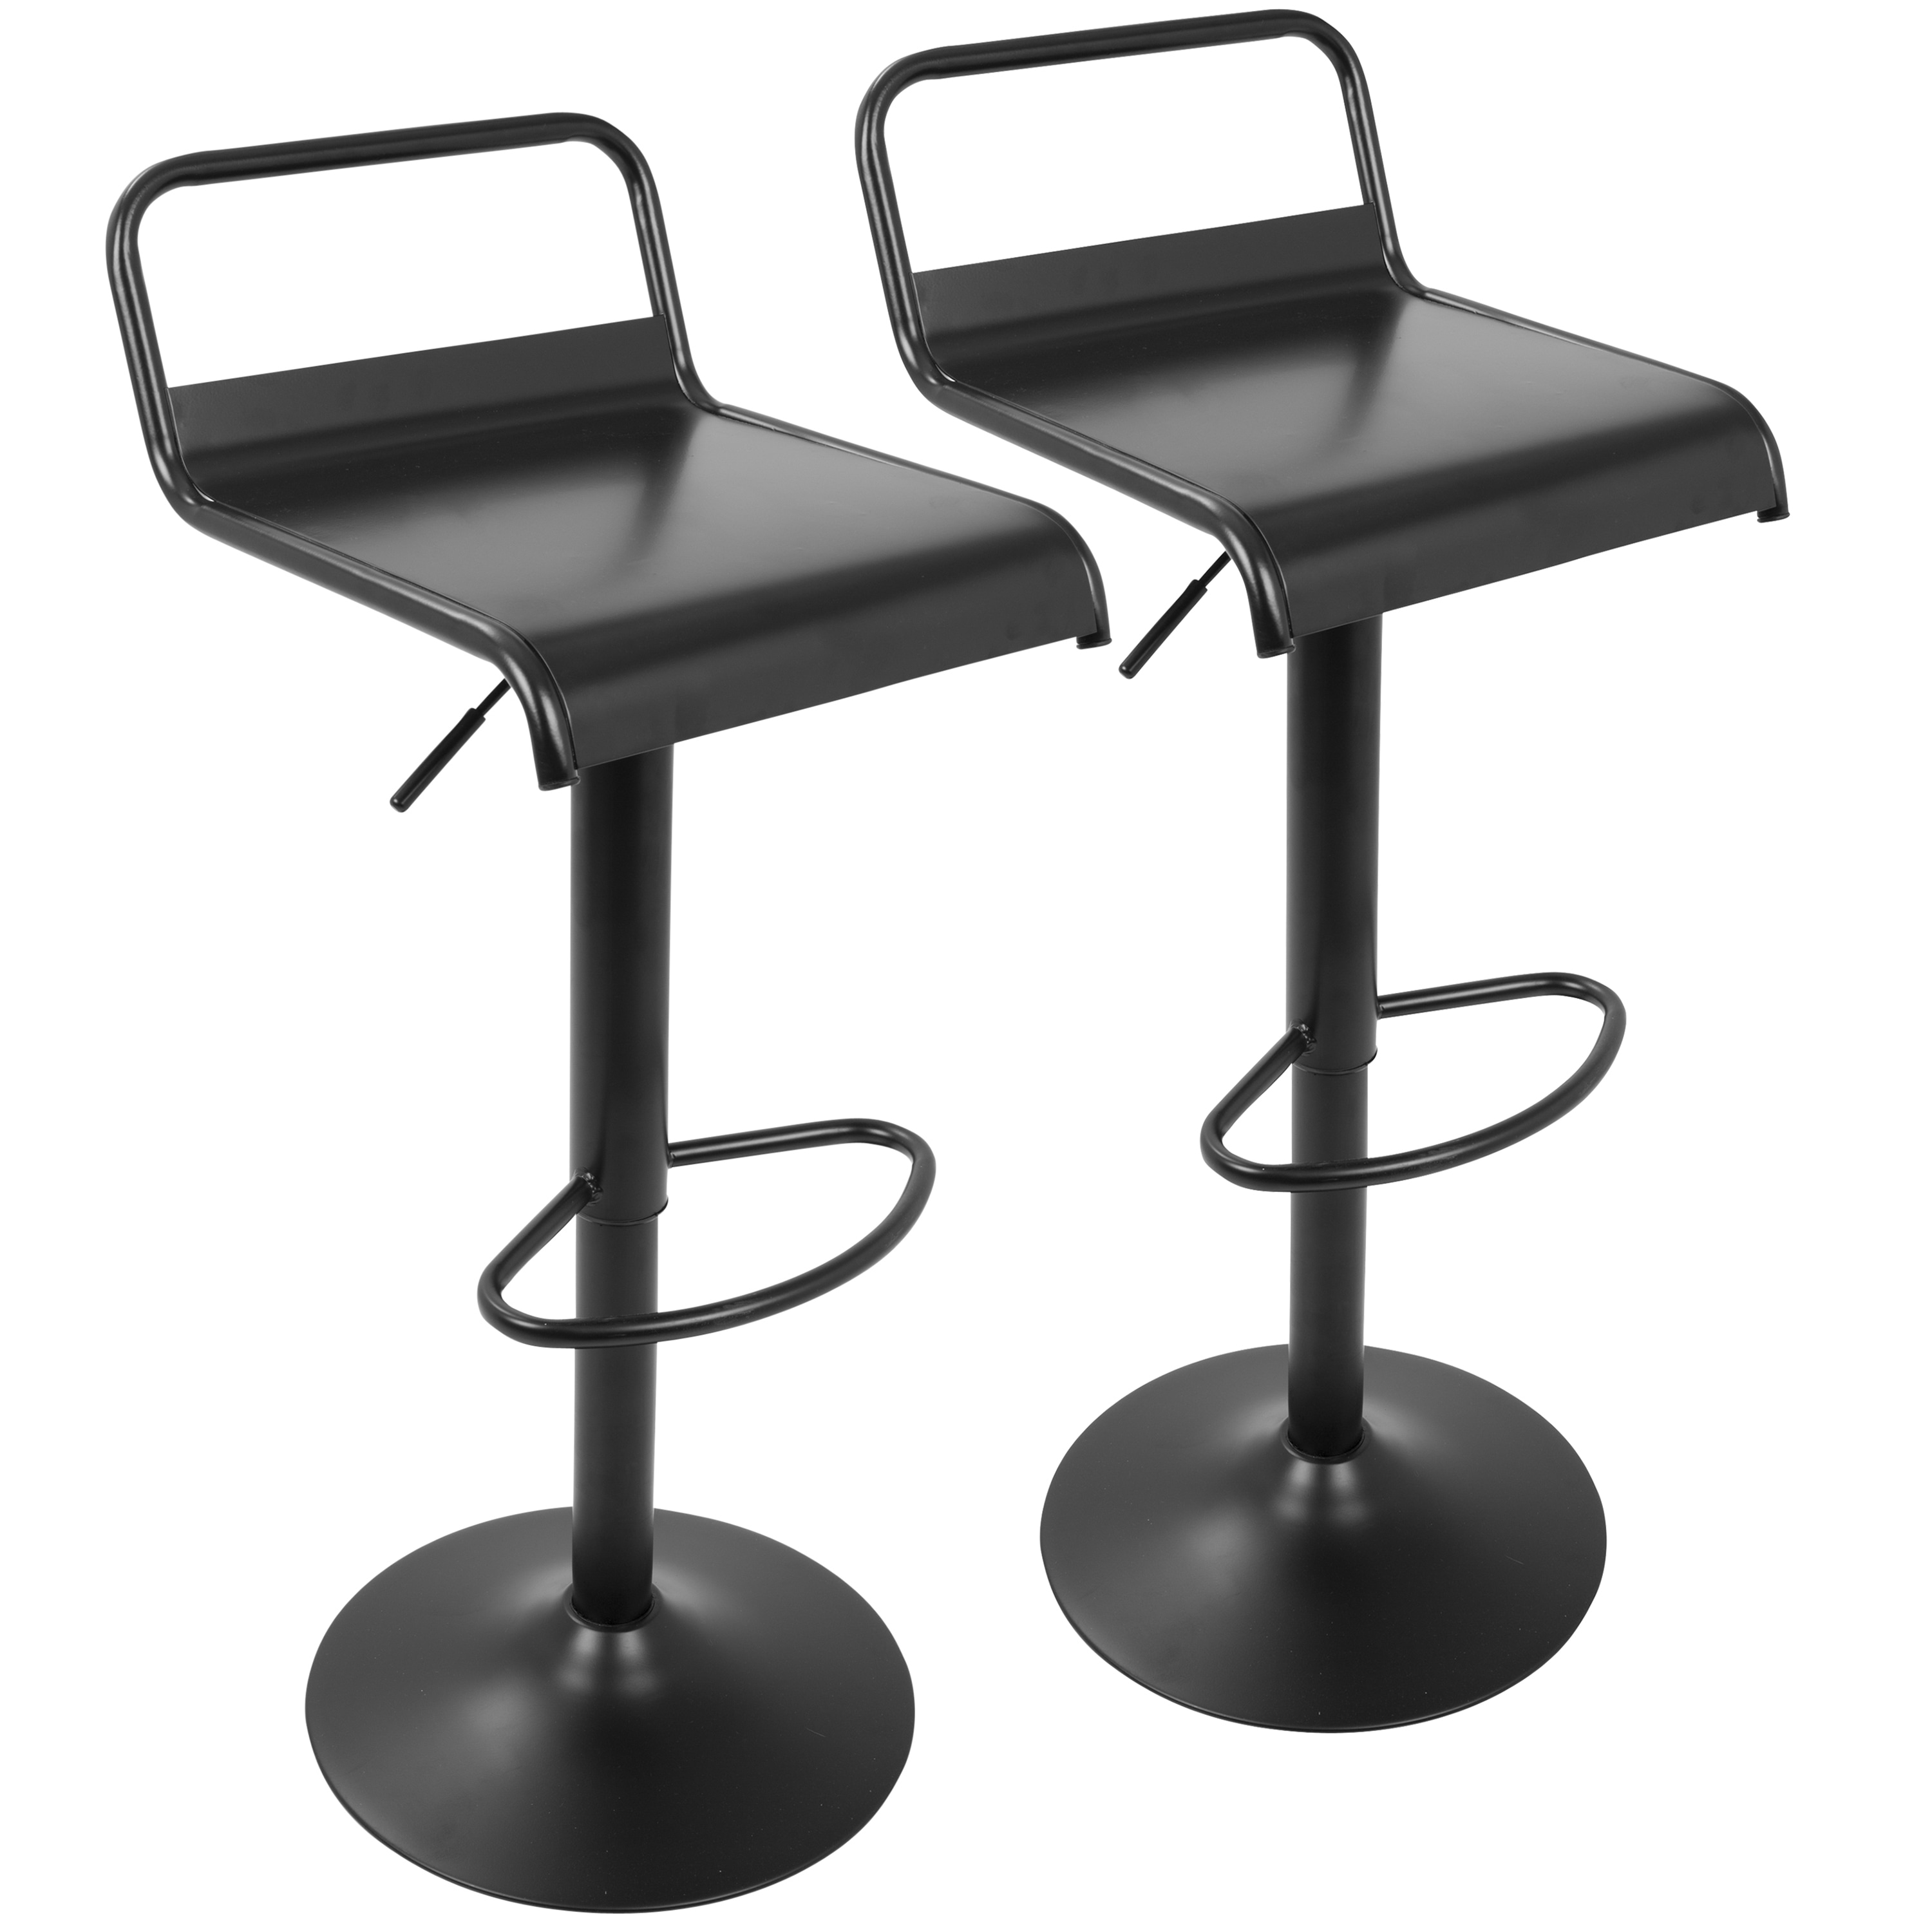 Incredible Emery Industrial Adjustable Bar Stool In Black Set Of 2 N A Ncnpc Chair Design For Home Ncnpcorg